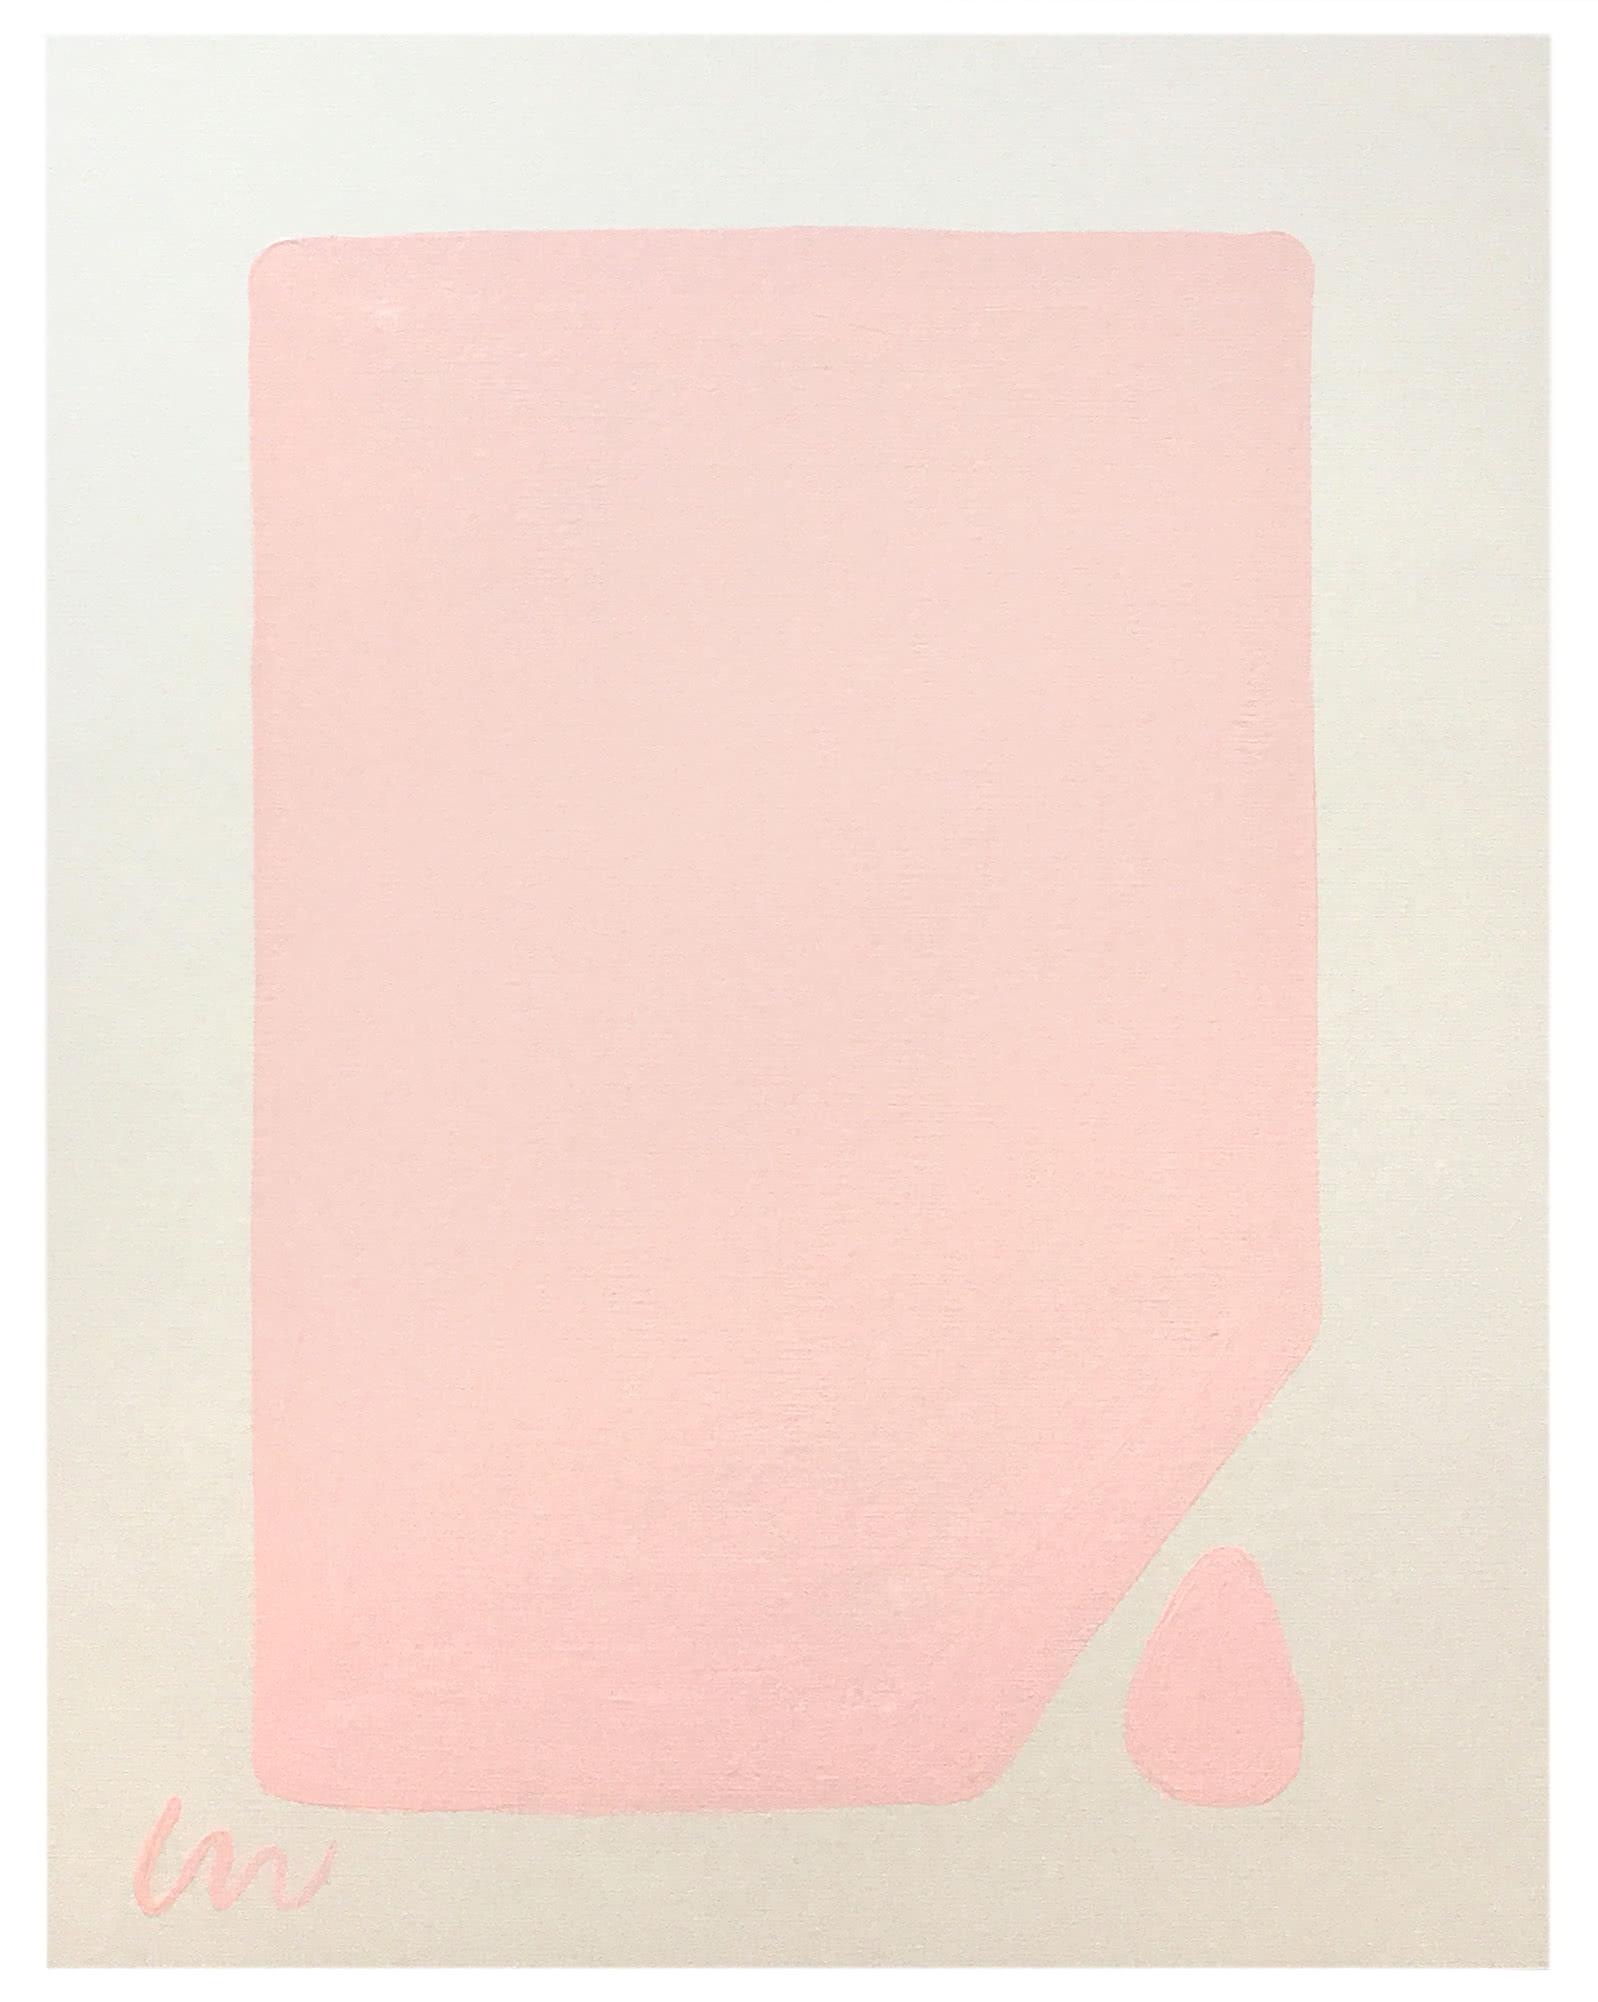 """Peachy Keen 2"" by Whitney Stoddard,"